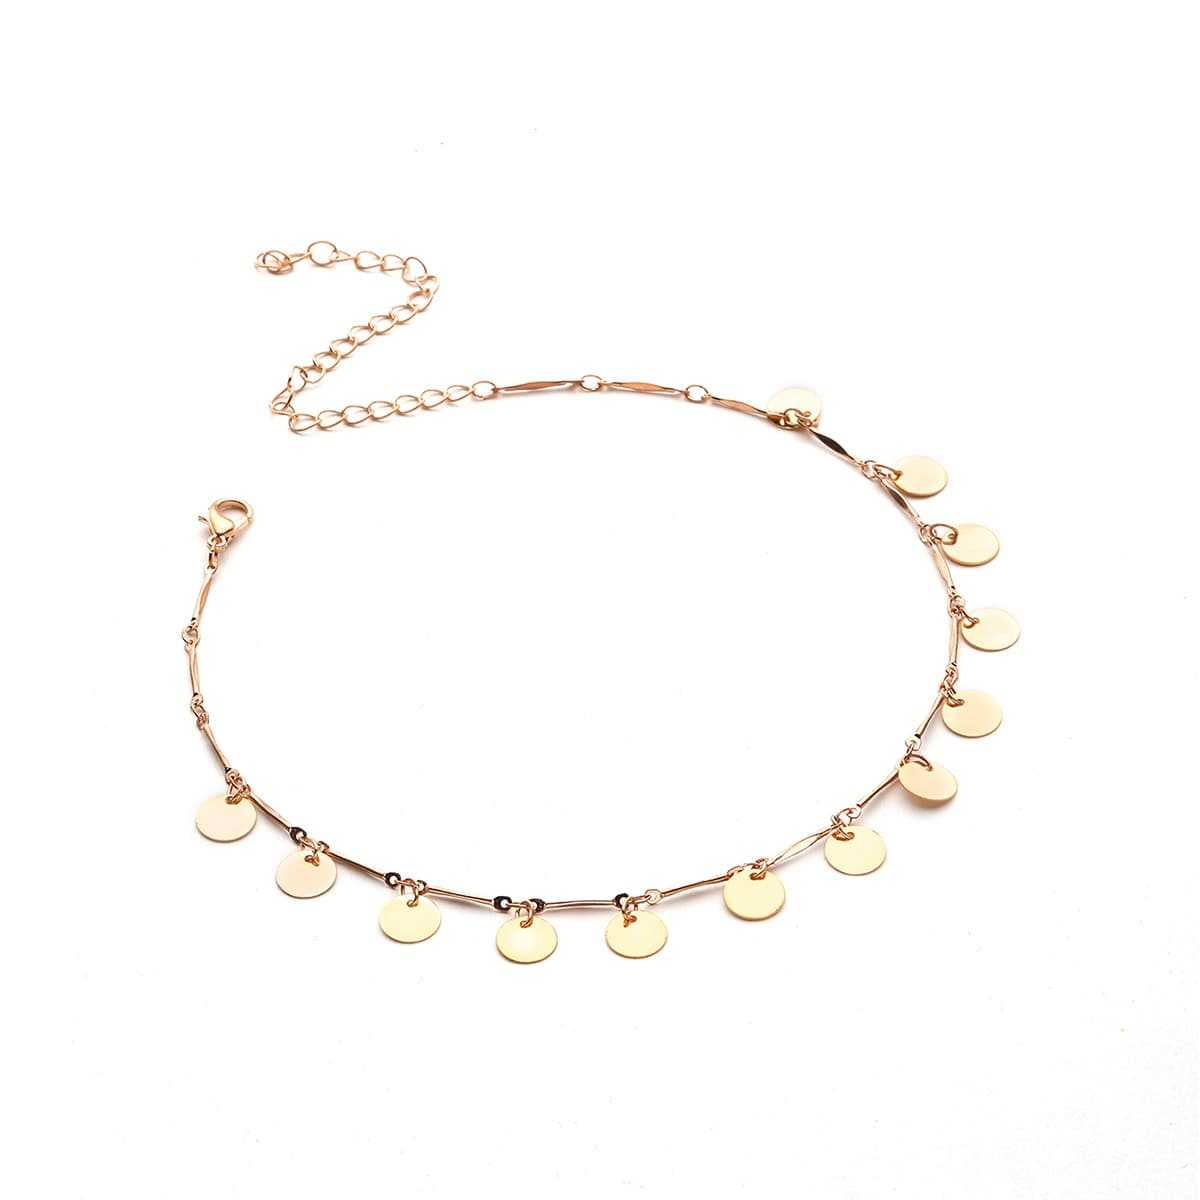 Sequin Embellished Chain Choker in Gold by ROMWE on GOOFASH